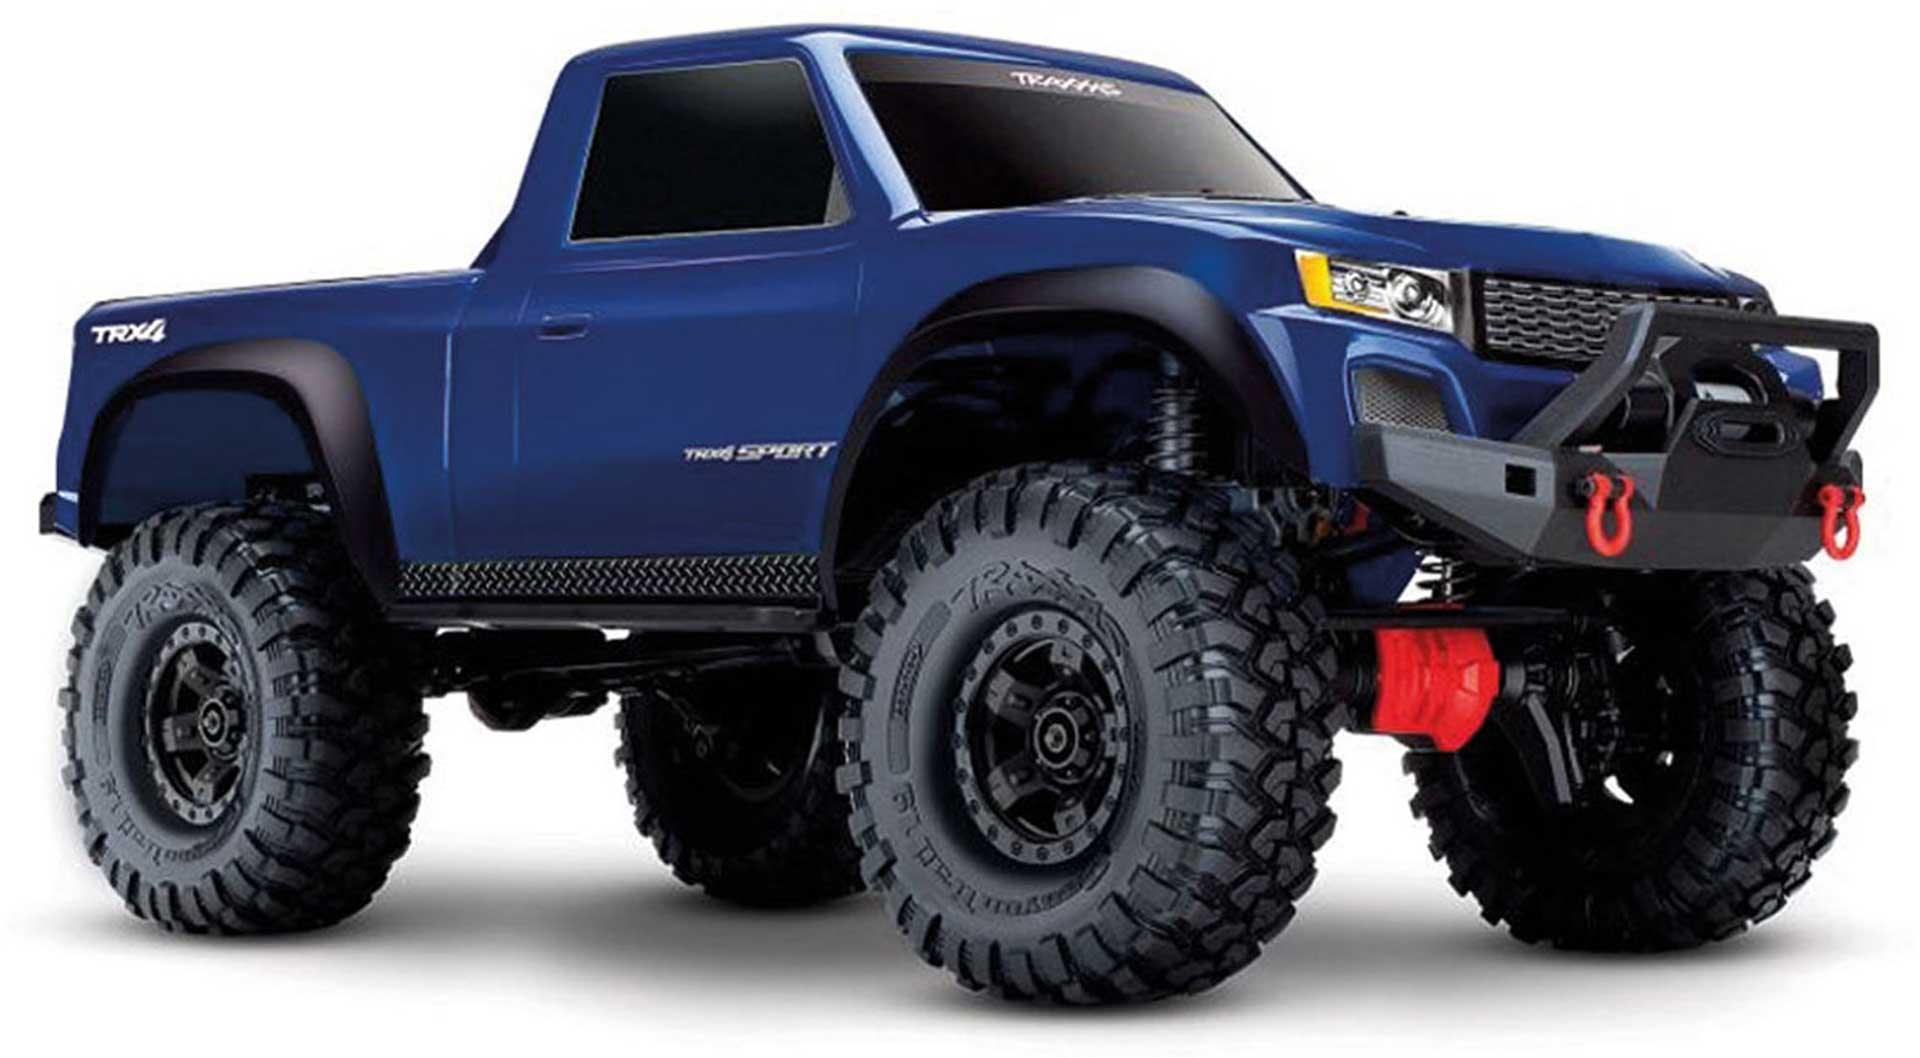 TRAXXAS TRX-4 SPORT 4X4 BLUE RTR SCALE CRAWLER 1/10 4WD BRUSHED WITHOUT BATTERY AND CHARGER